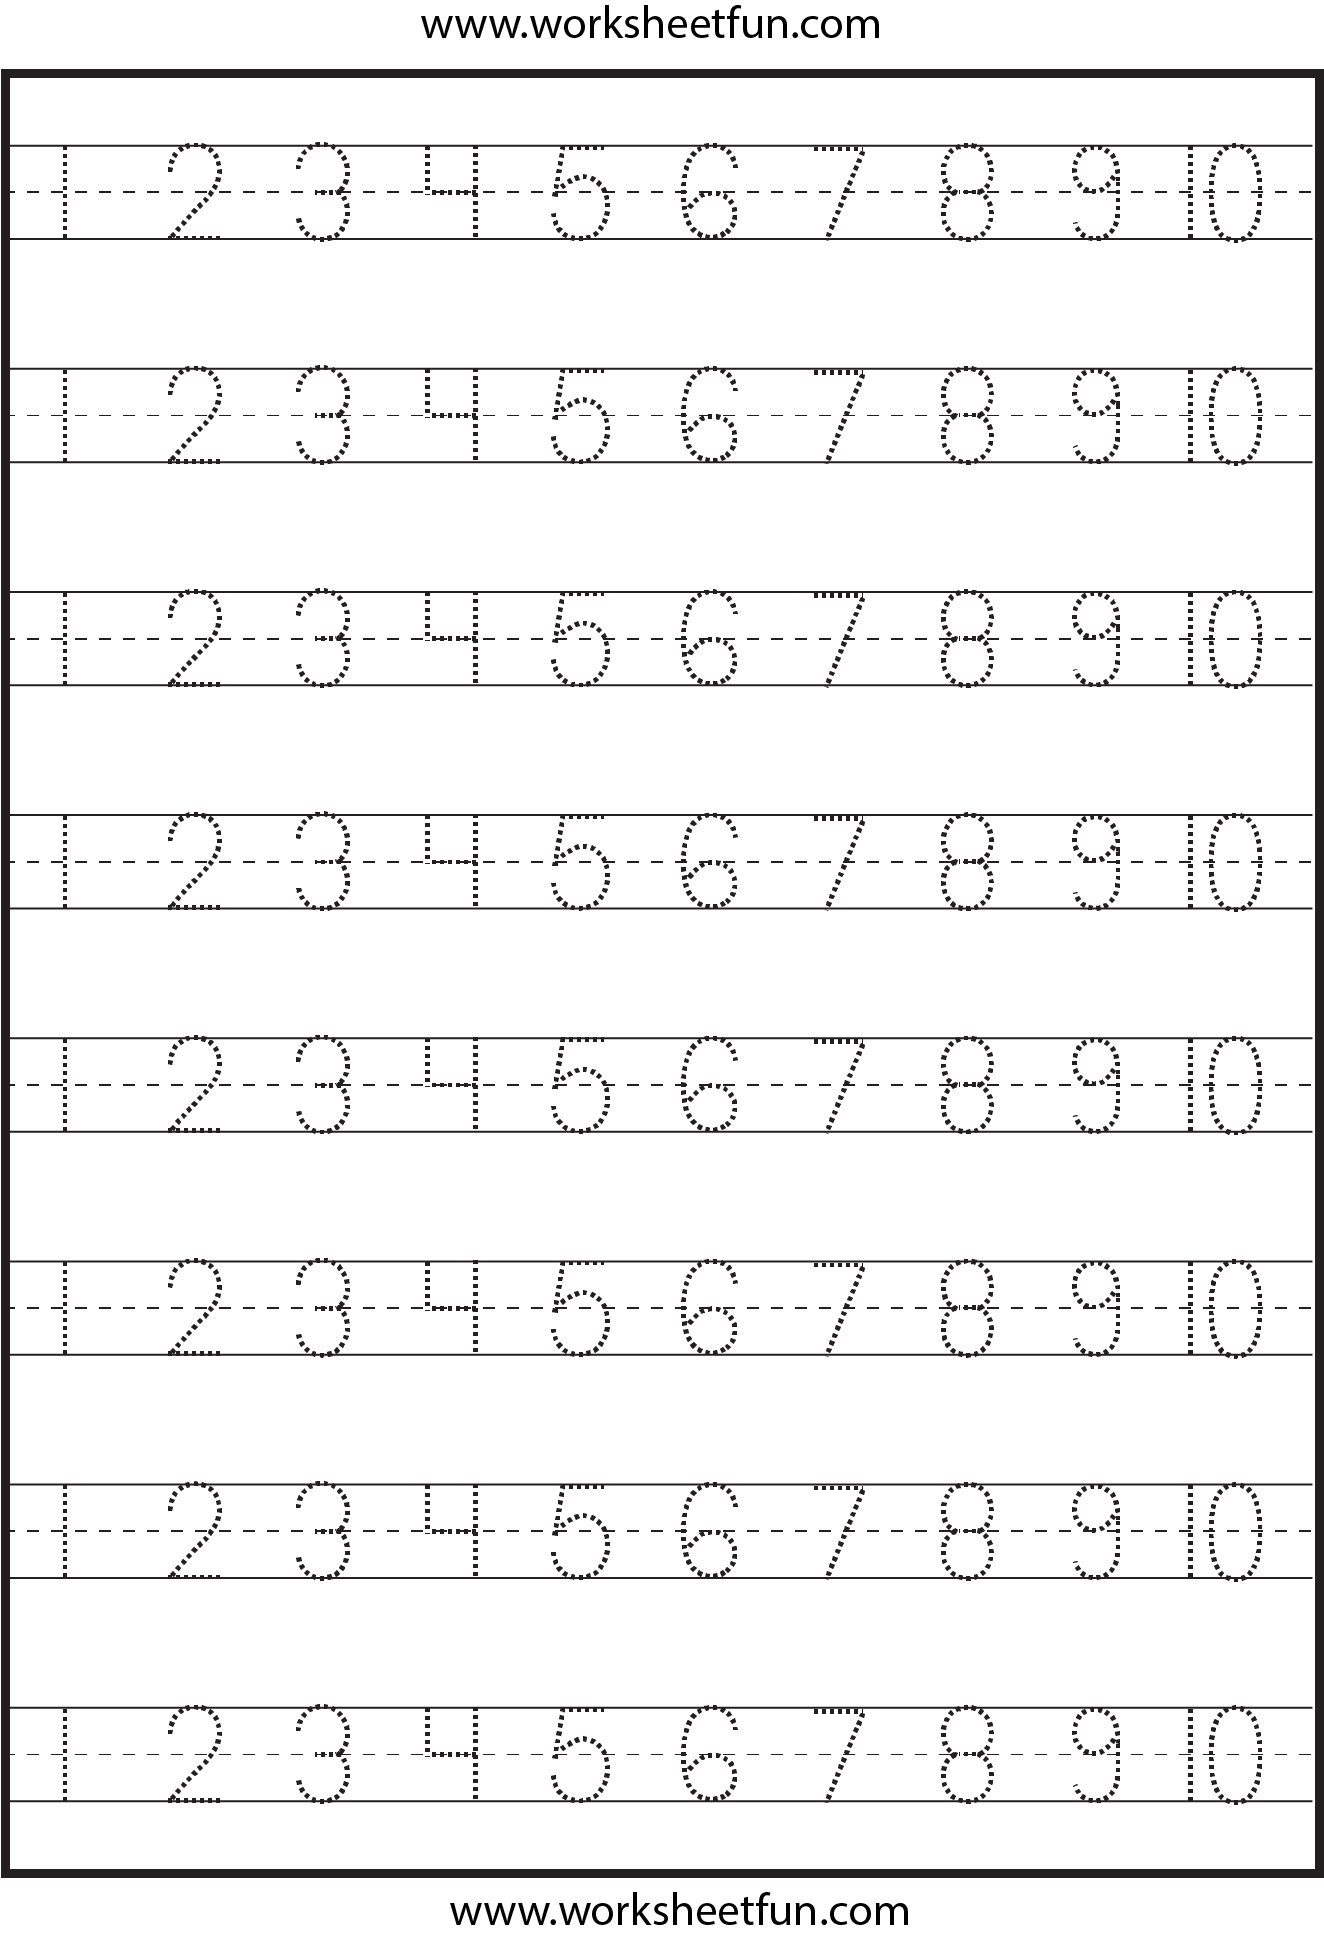 worksheet Kindergarten Tracing Worksheets number tracing 1 10 worksheet free printable worksheets tracing